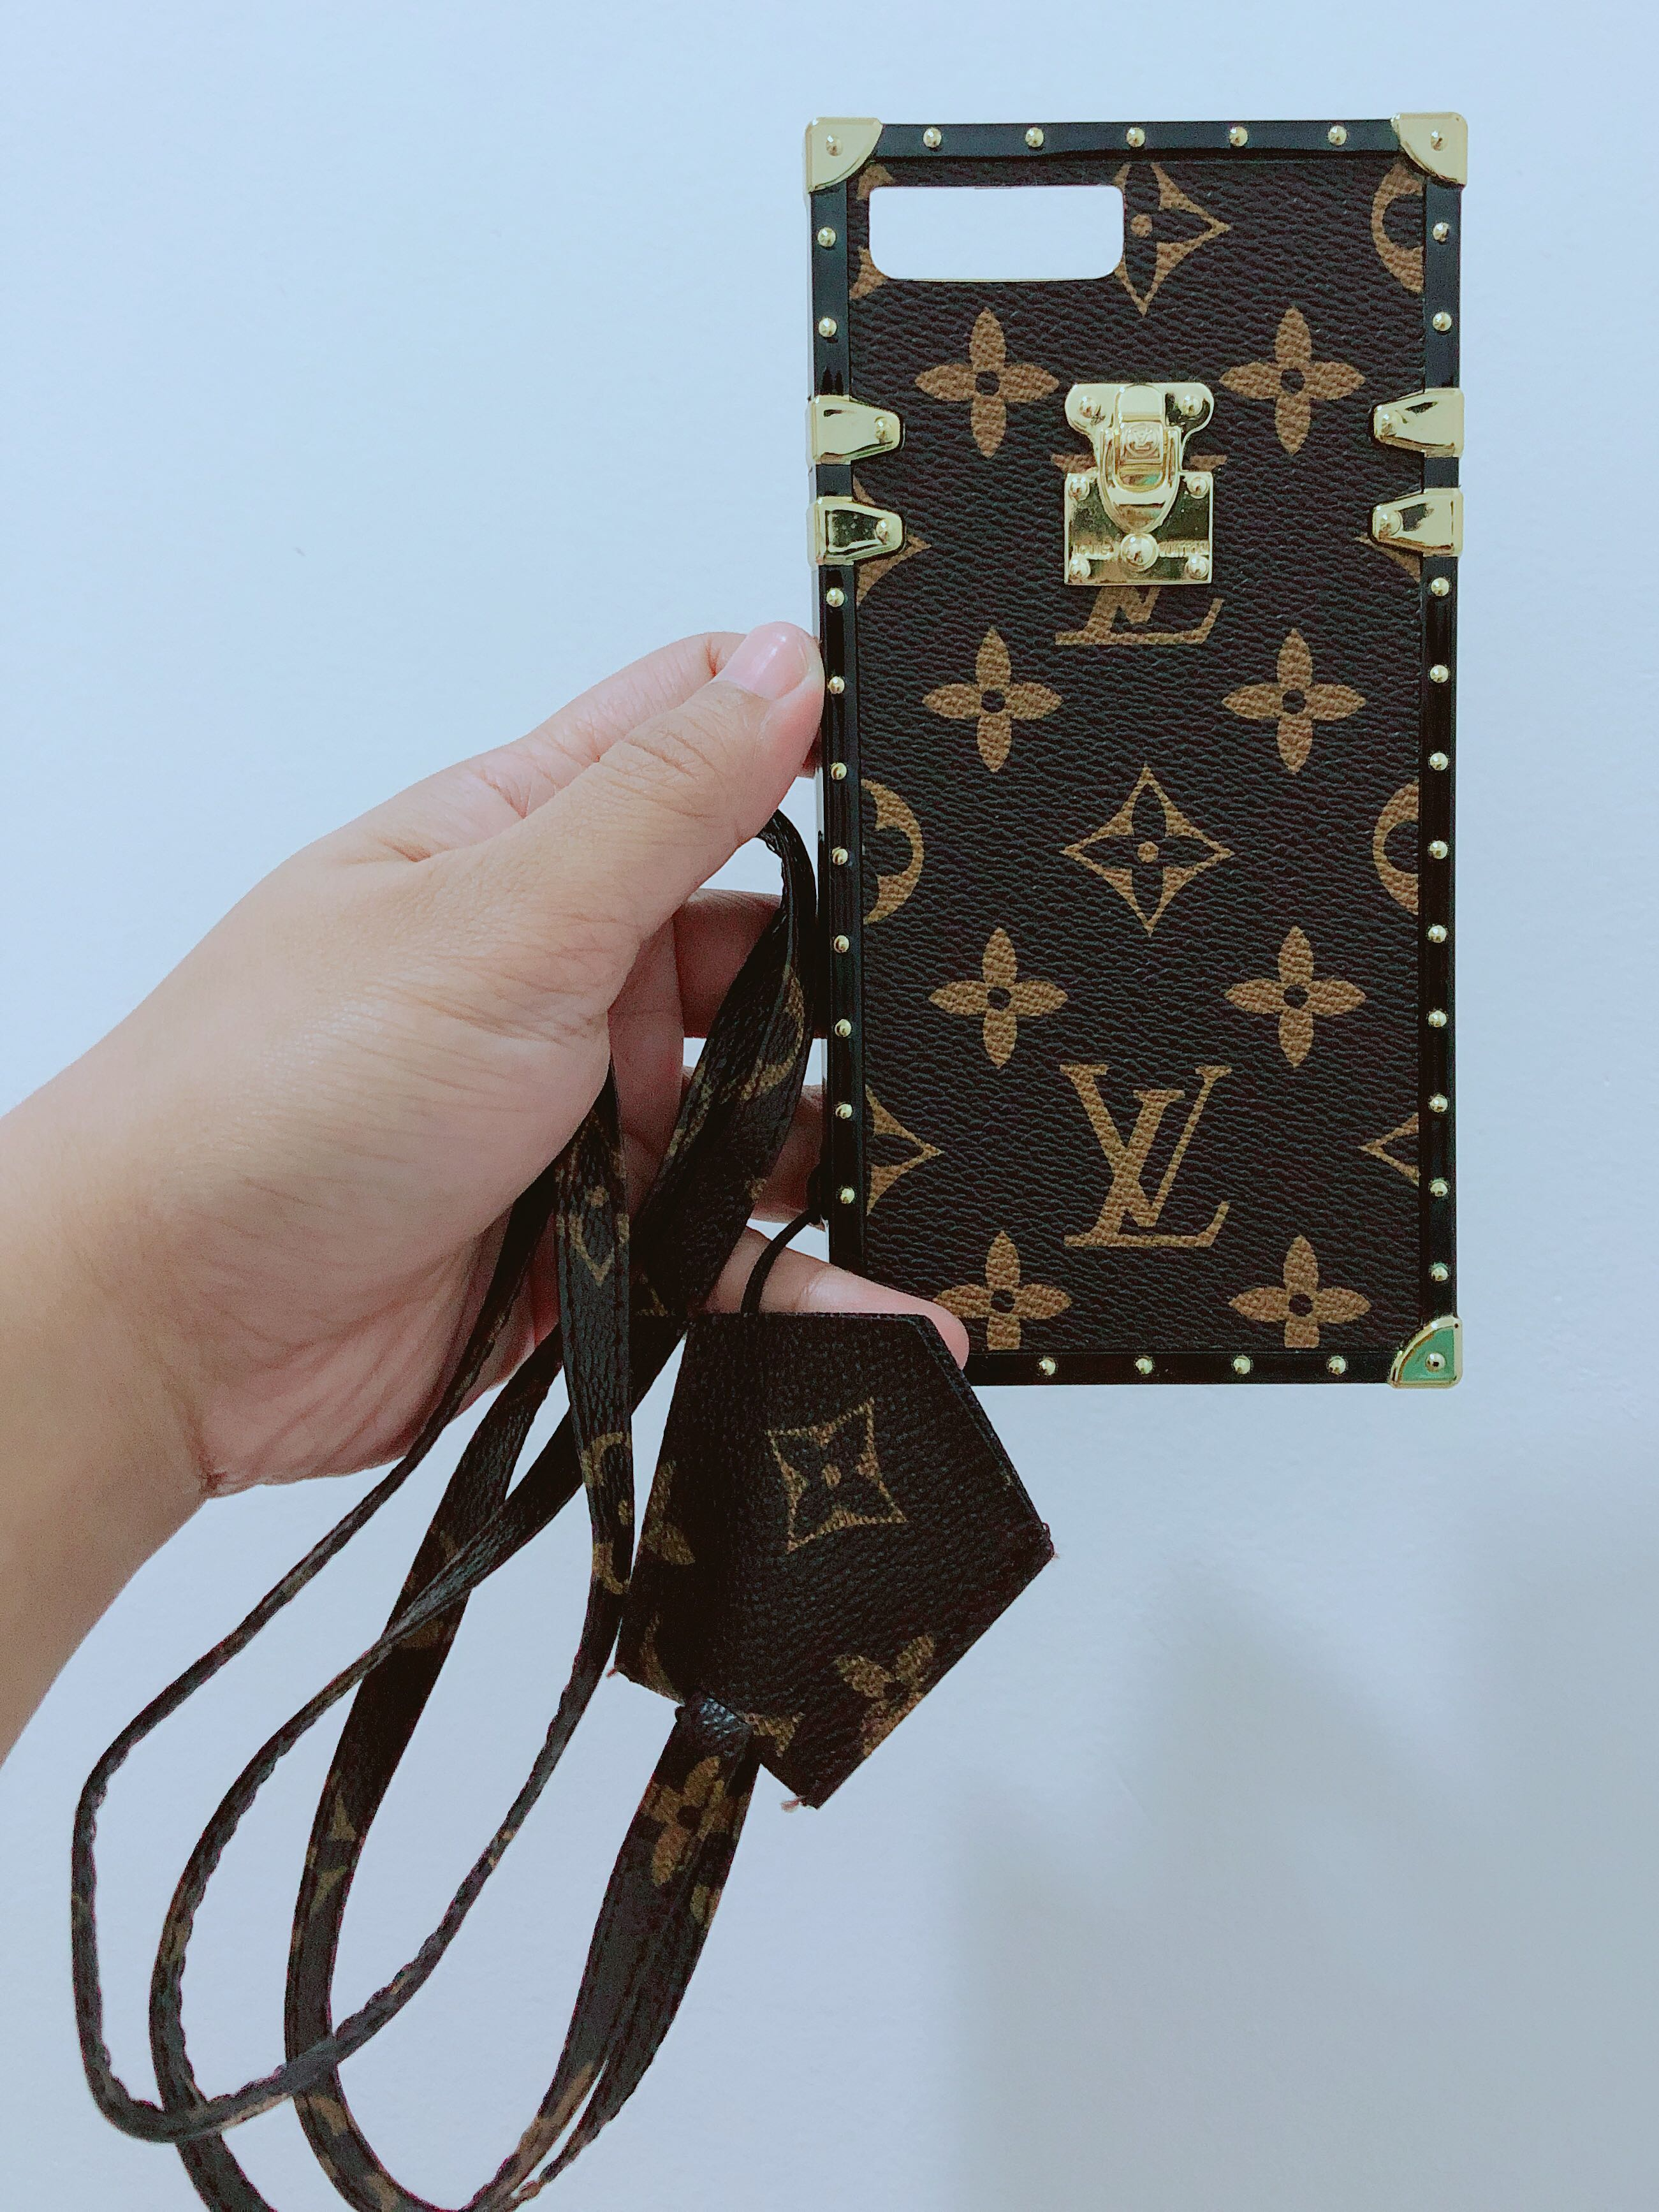 LV Eye Trunk iPhone case for 7+/8+